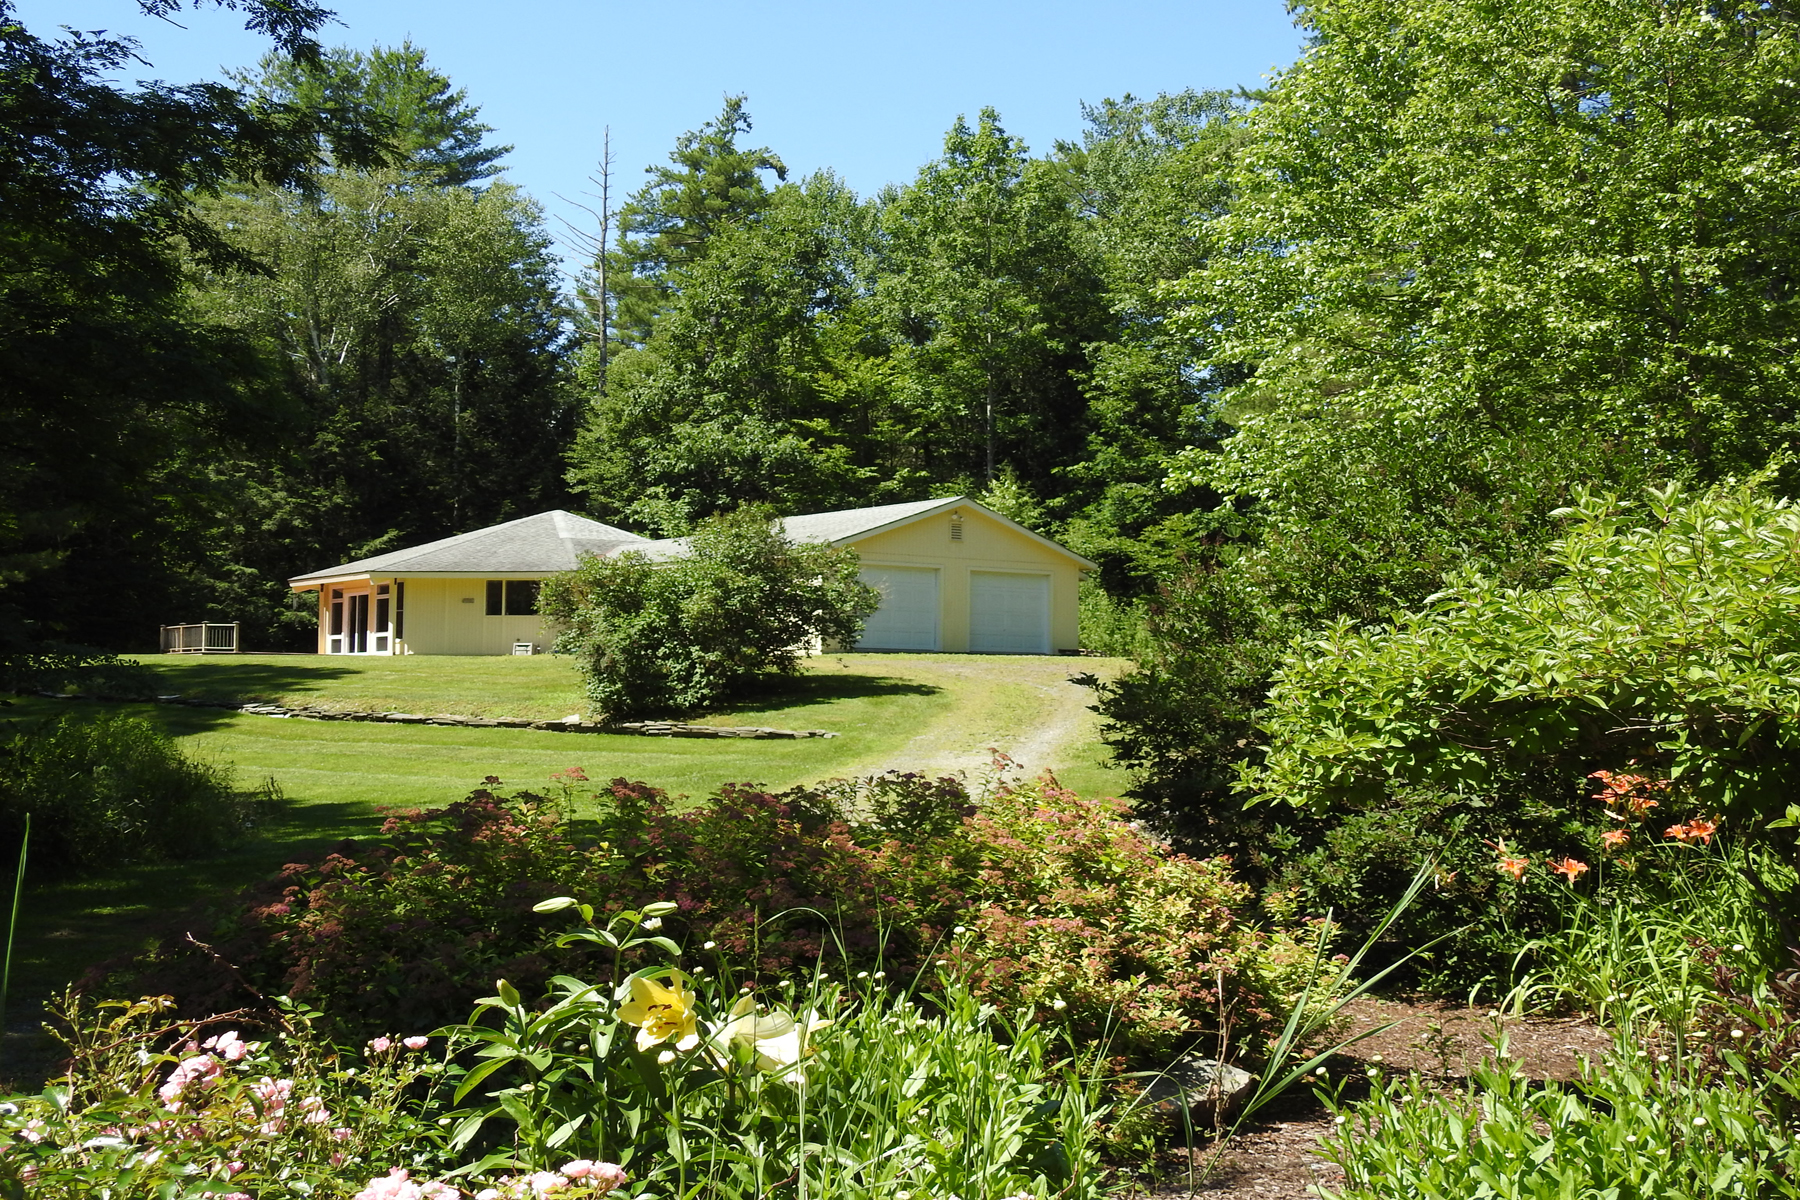 Single Family Homes for Sale at 2130 Vermont 30s Route, Poultney 2130 Vermont 30s Route Poultney, Vermont 05764 United States